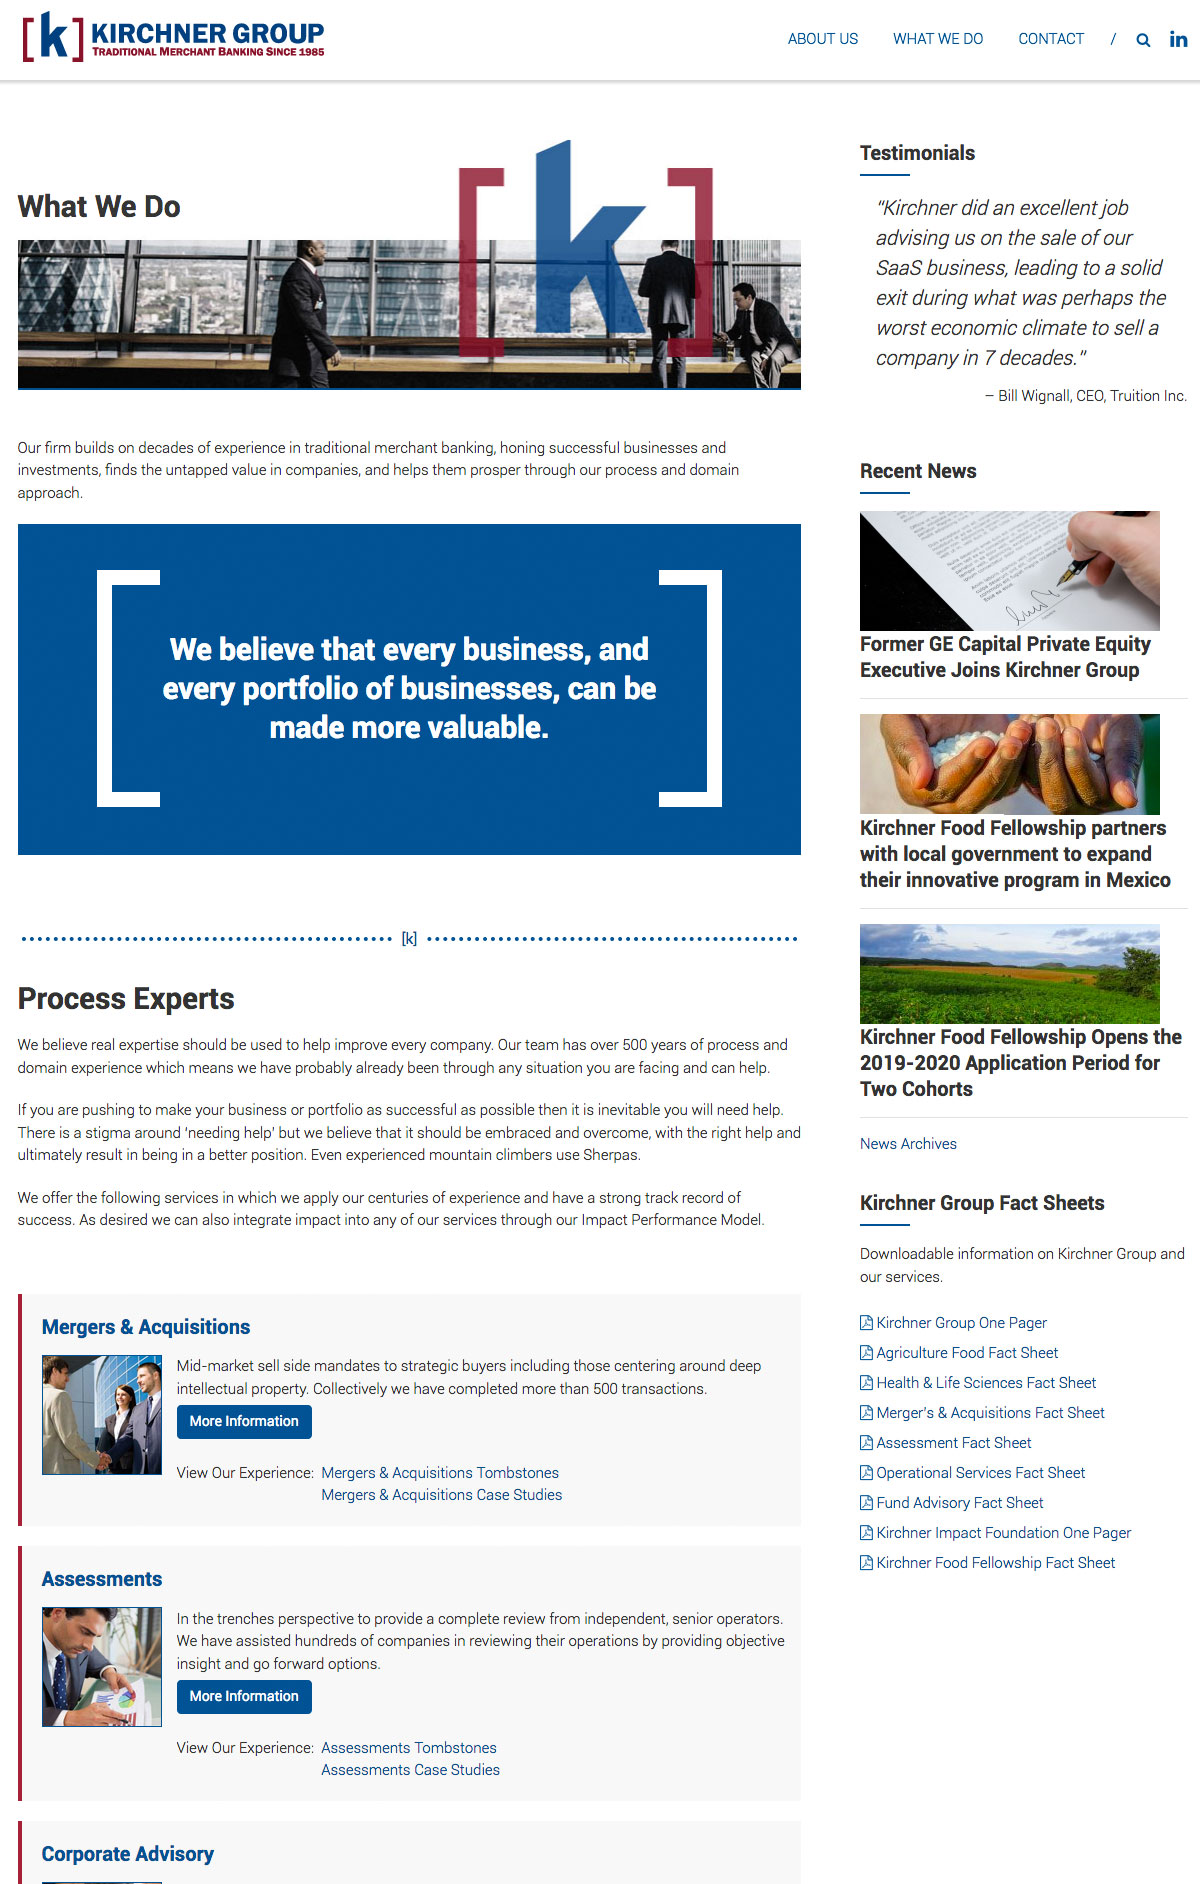 Kirchner Group Content Page